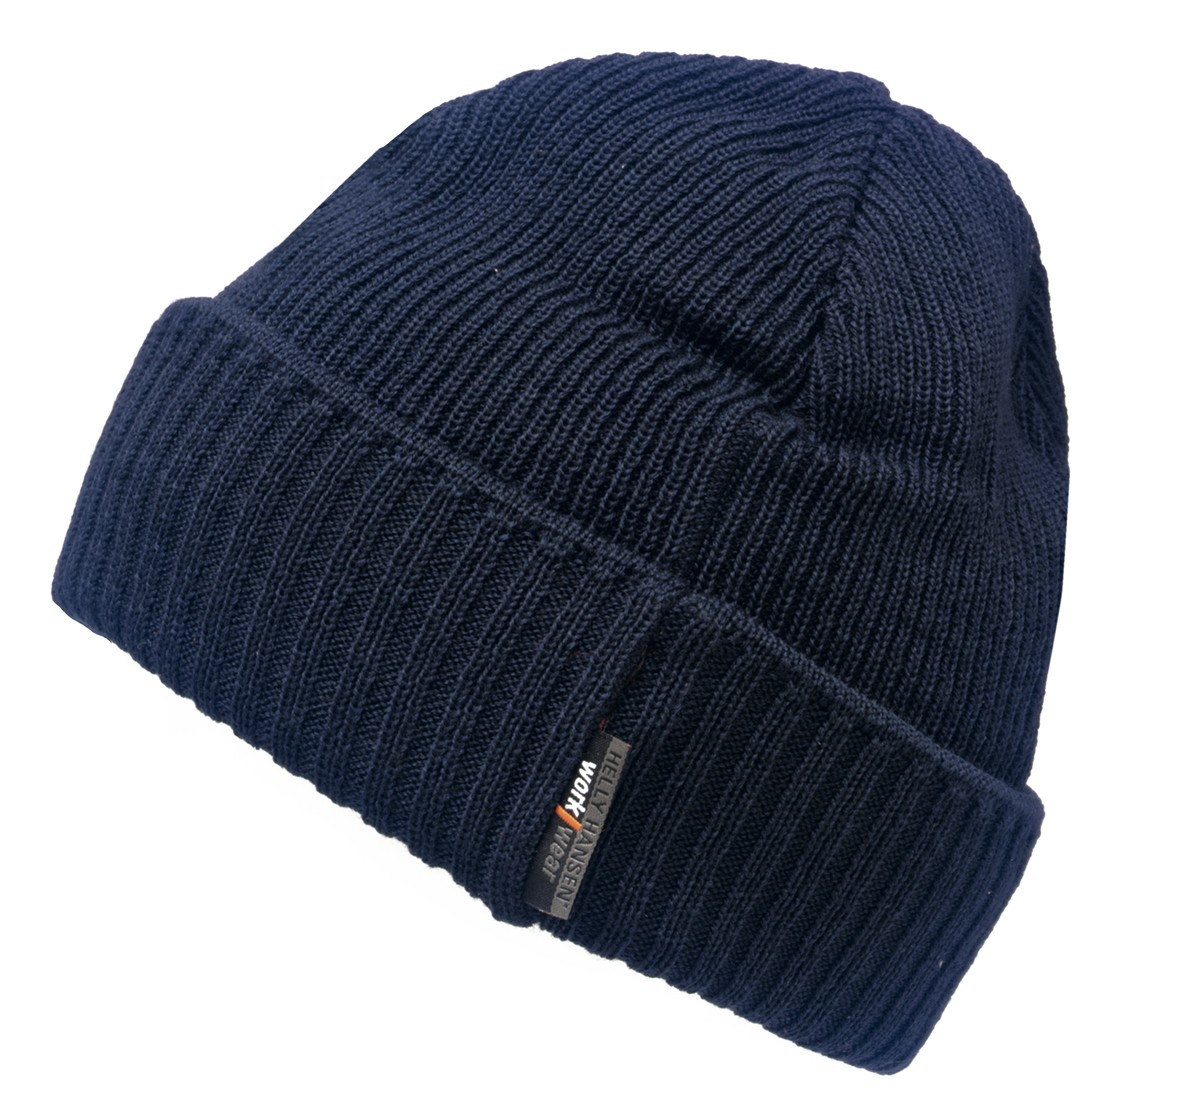 Helly Hansen windstopper hat